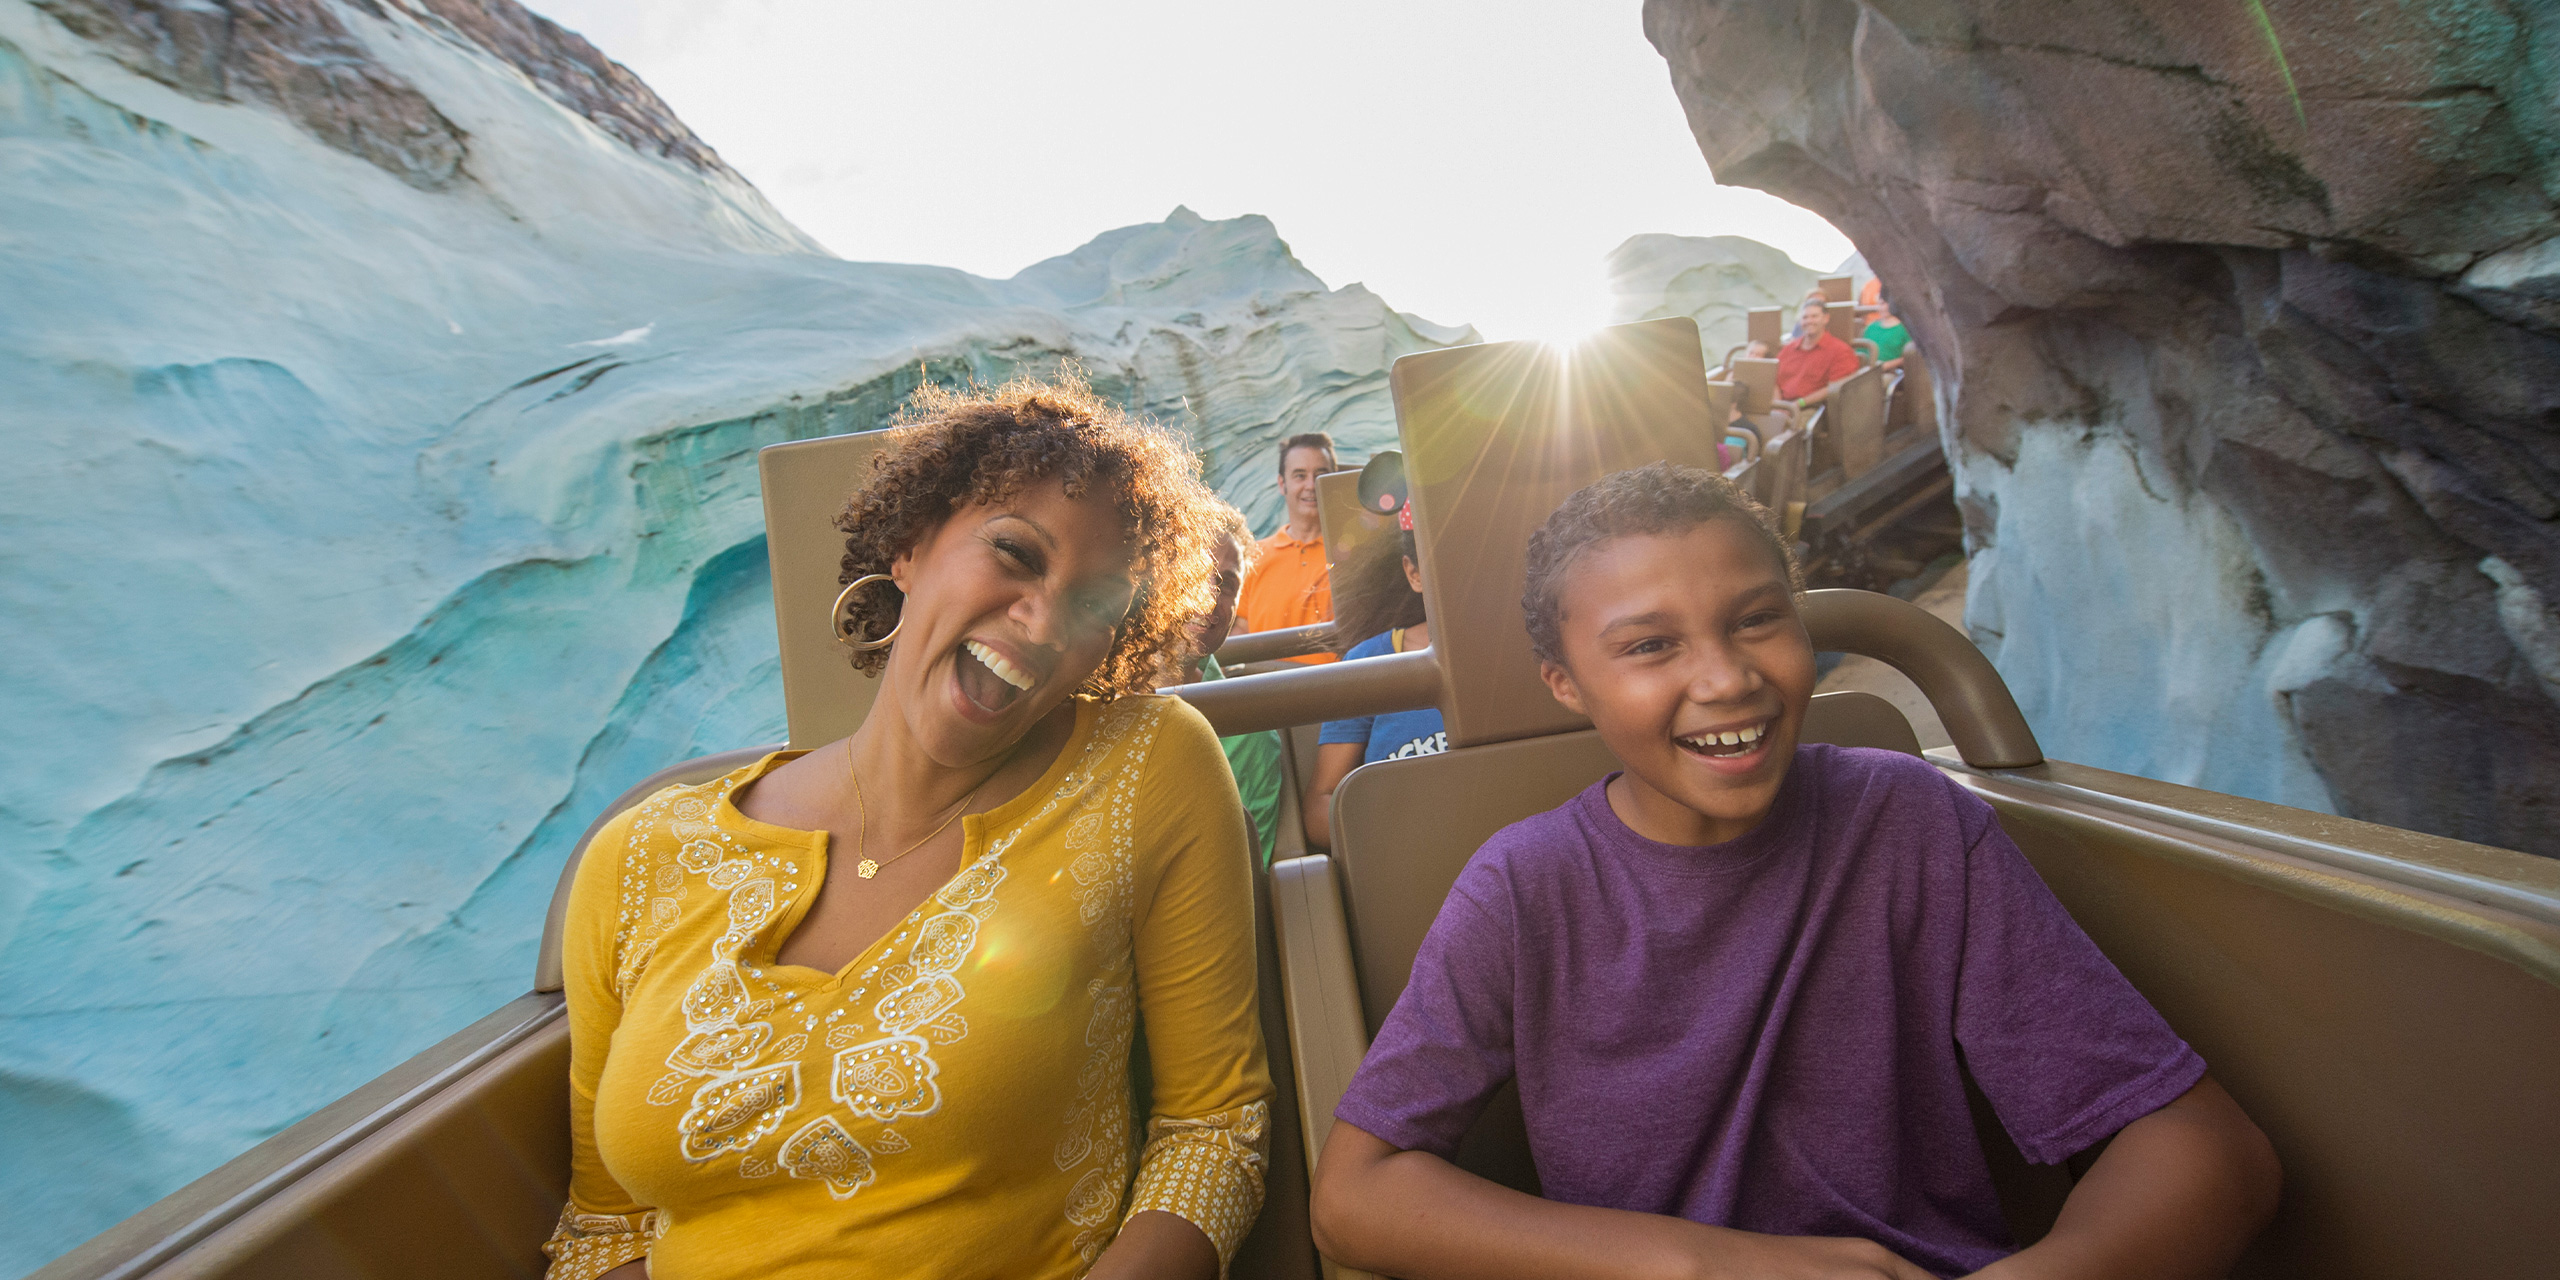 Expedition Everest ride family;